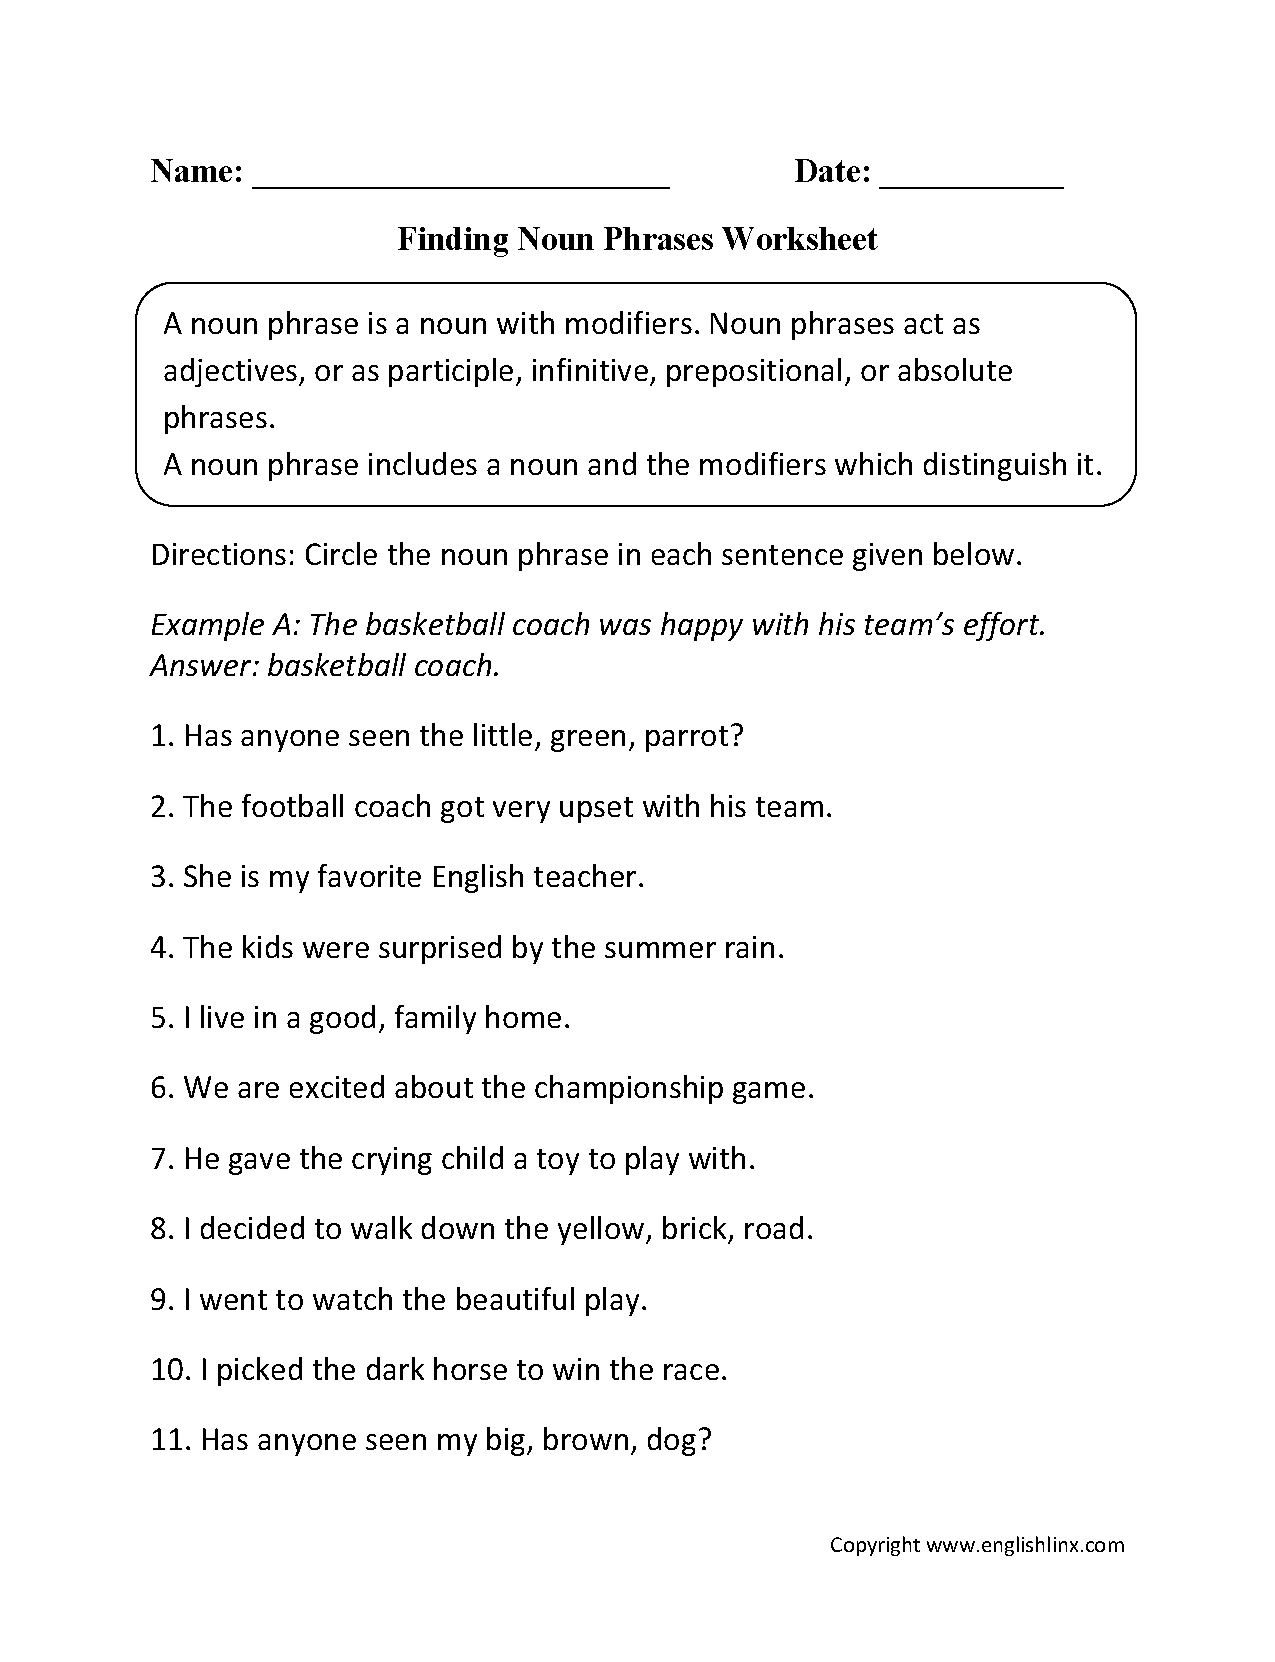 Worksheet Worksheet Of Nouns englishlinx com nouns worksheets noun phrases worksheets